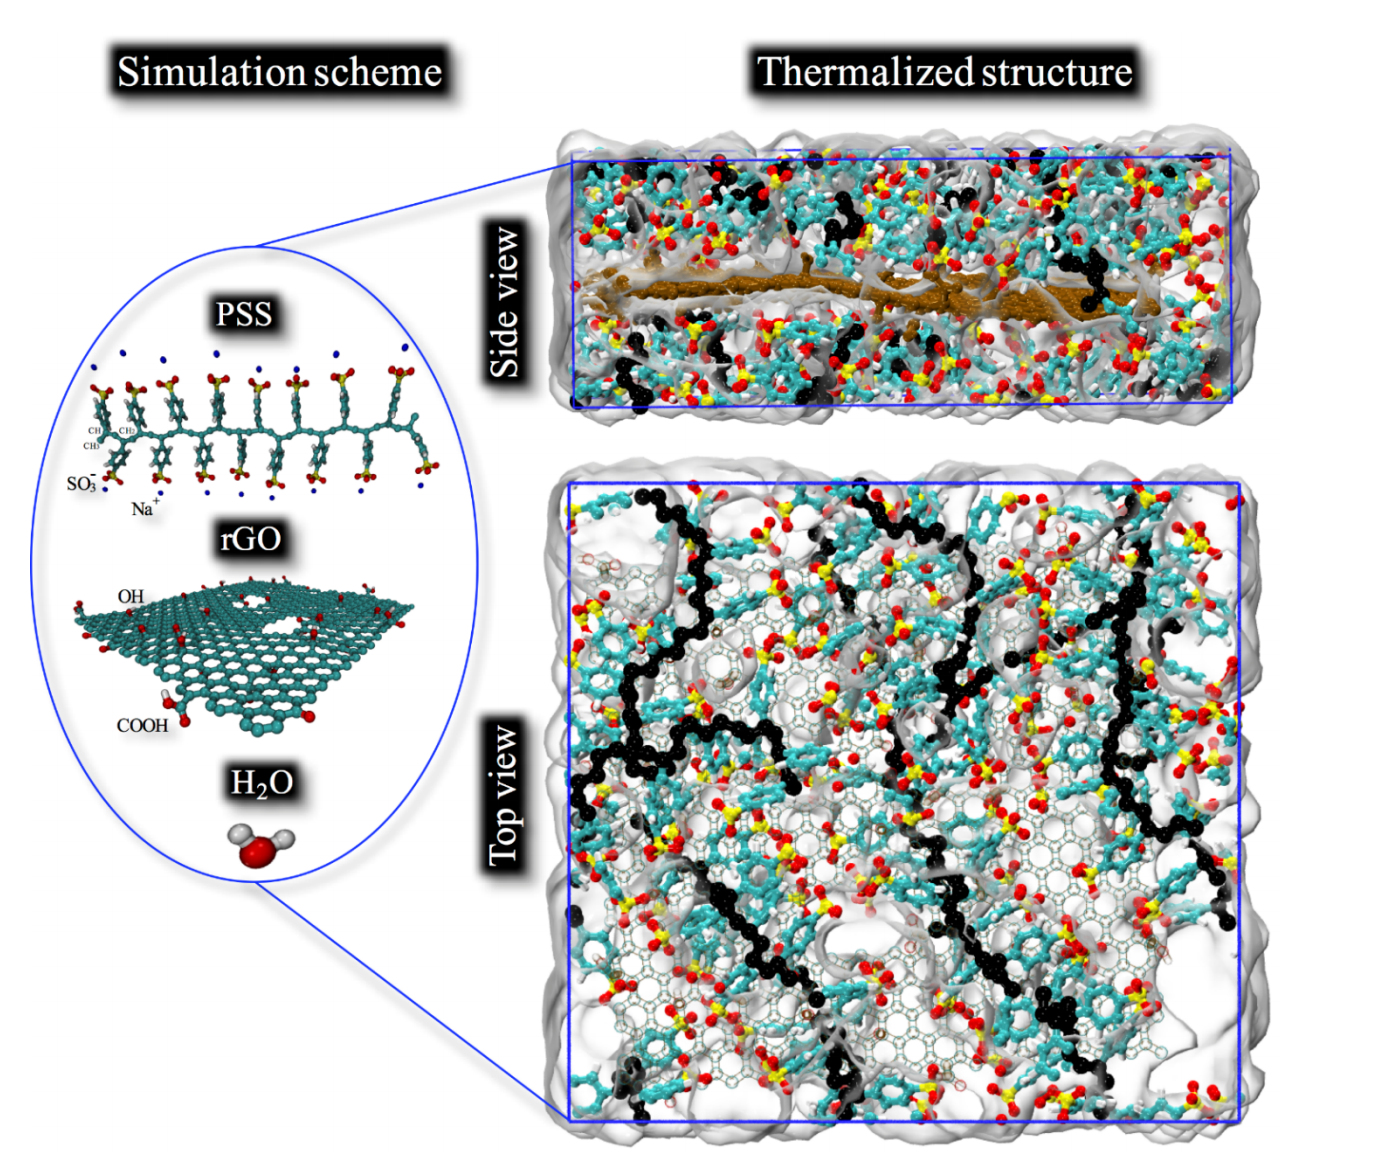 Synthesis, characterization and computational simulation of graphene nanoplatelets stabilized in poly (styrene sulfonate) sodium salt